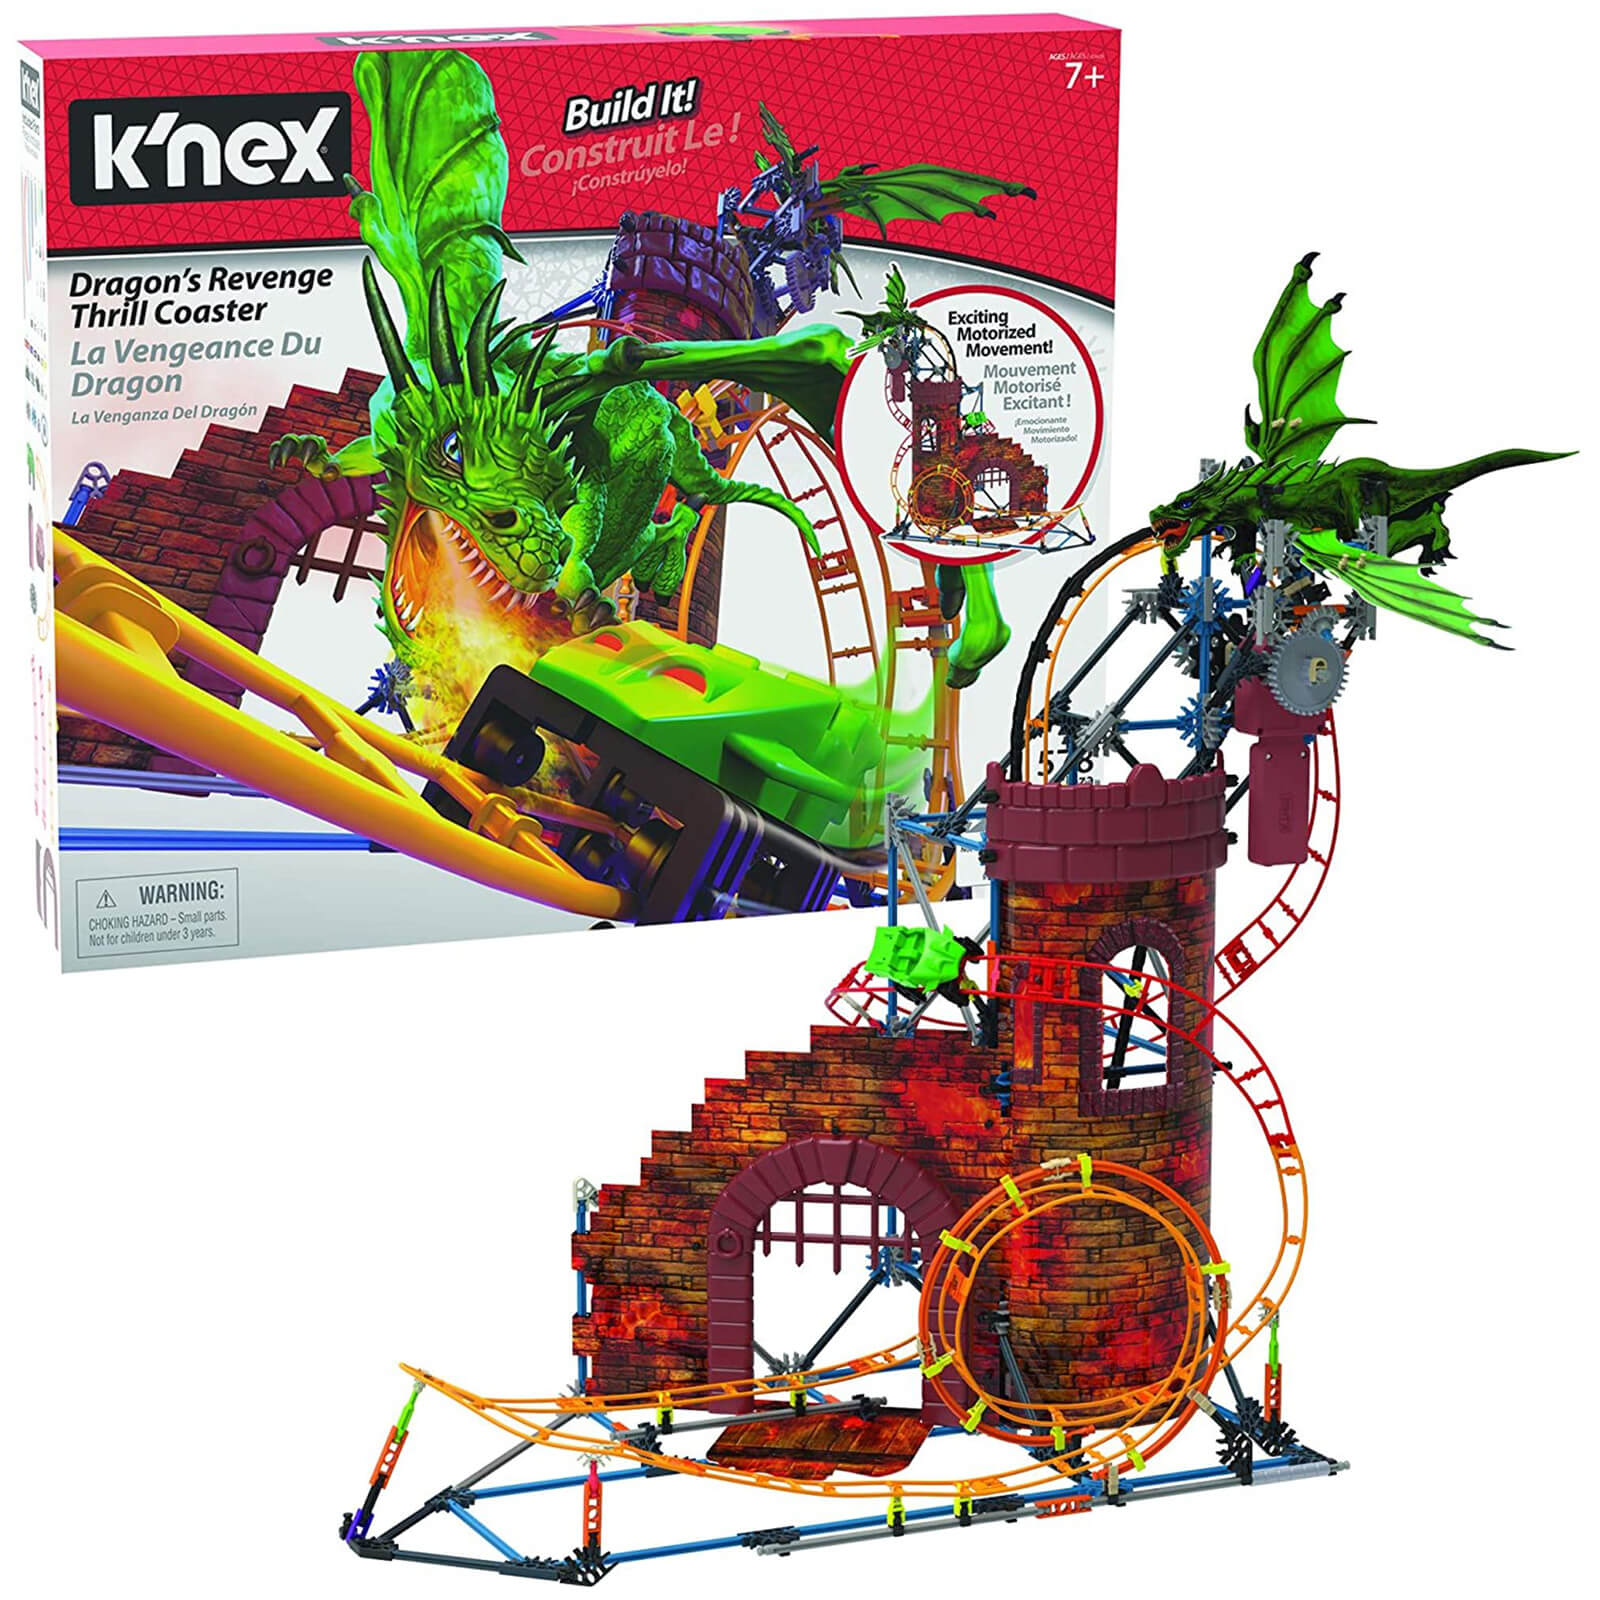 Image of Knex Dragon Revent Thrill Coaster Ride Building Set